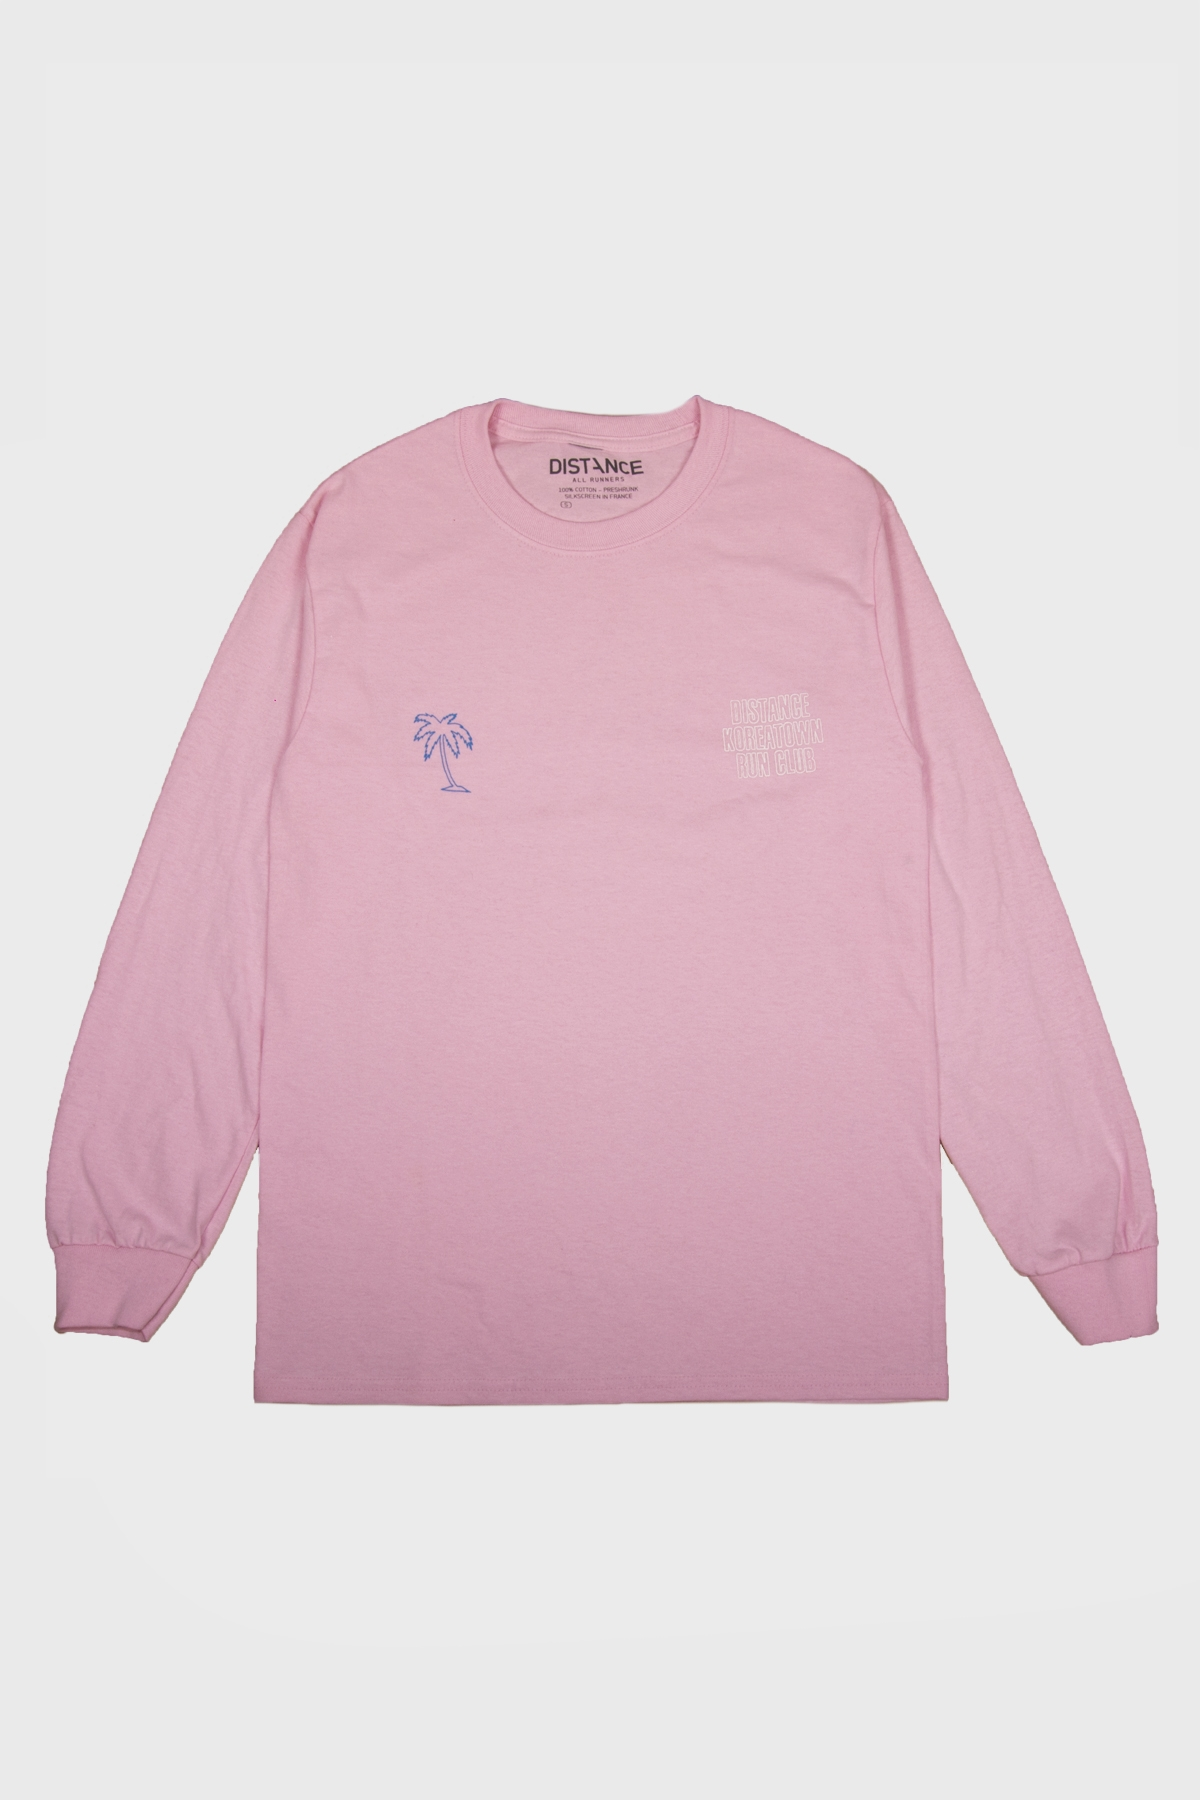 Distance x KRC - Long sleeve LA Marathon 2020 - Pink